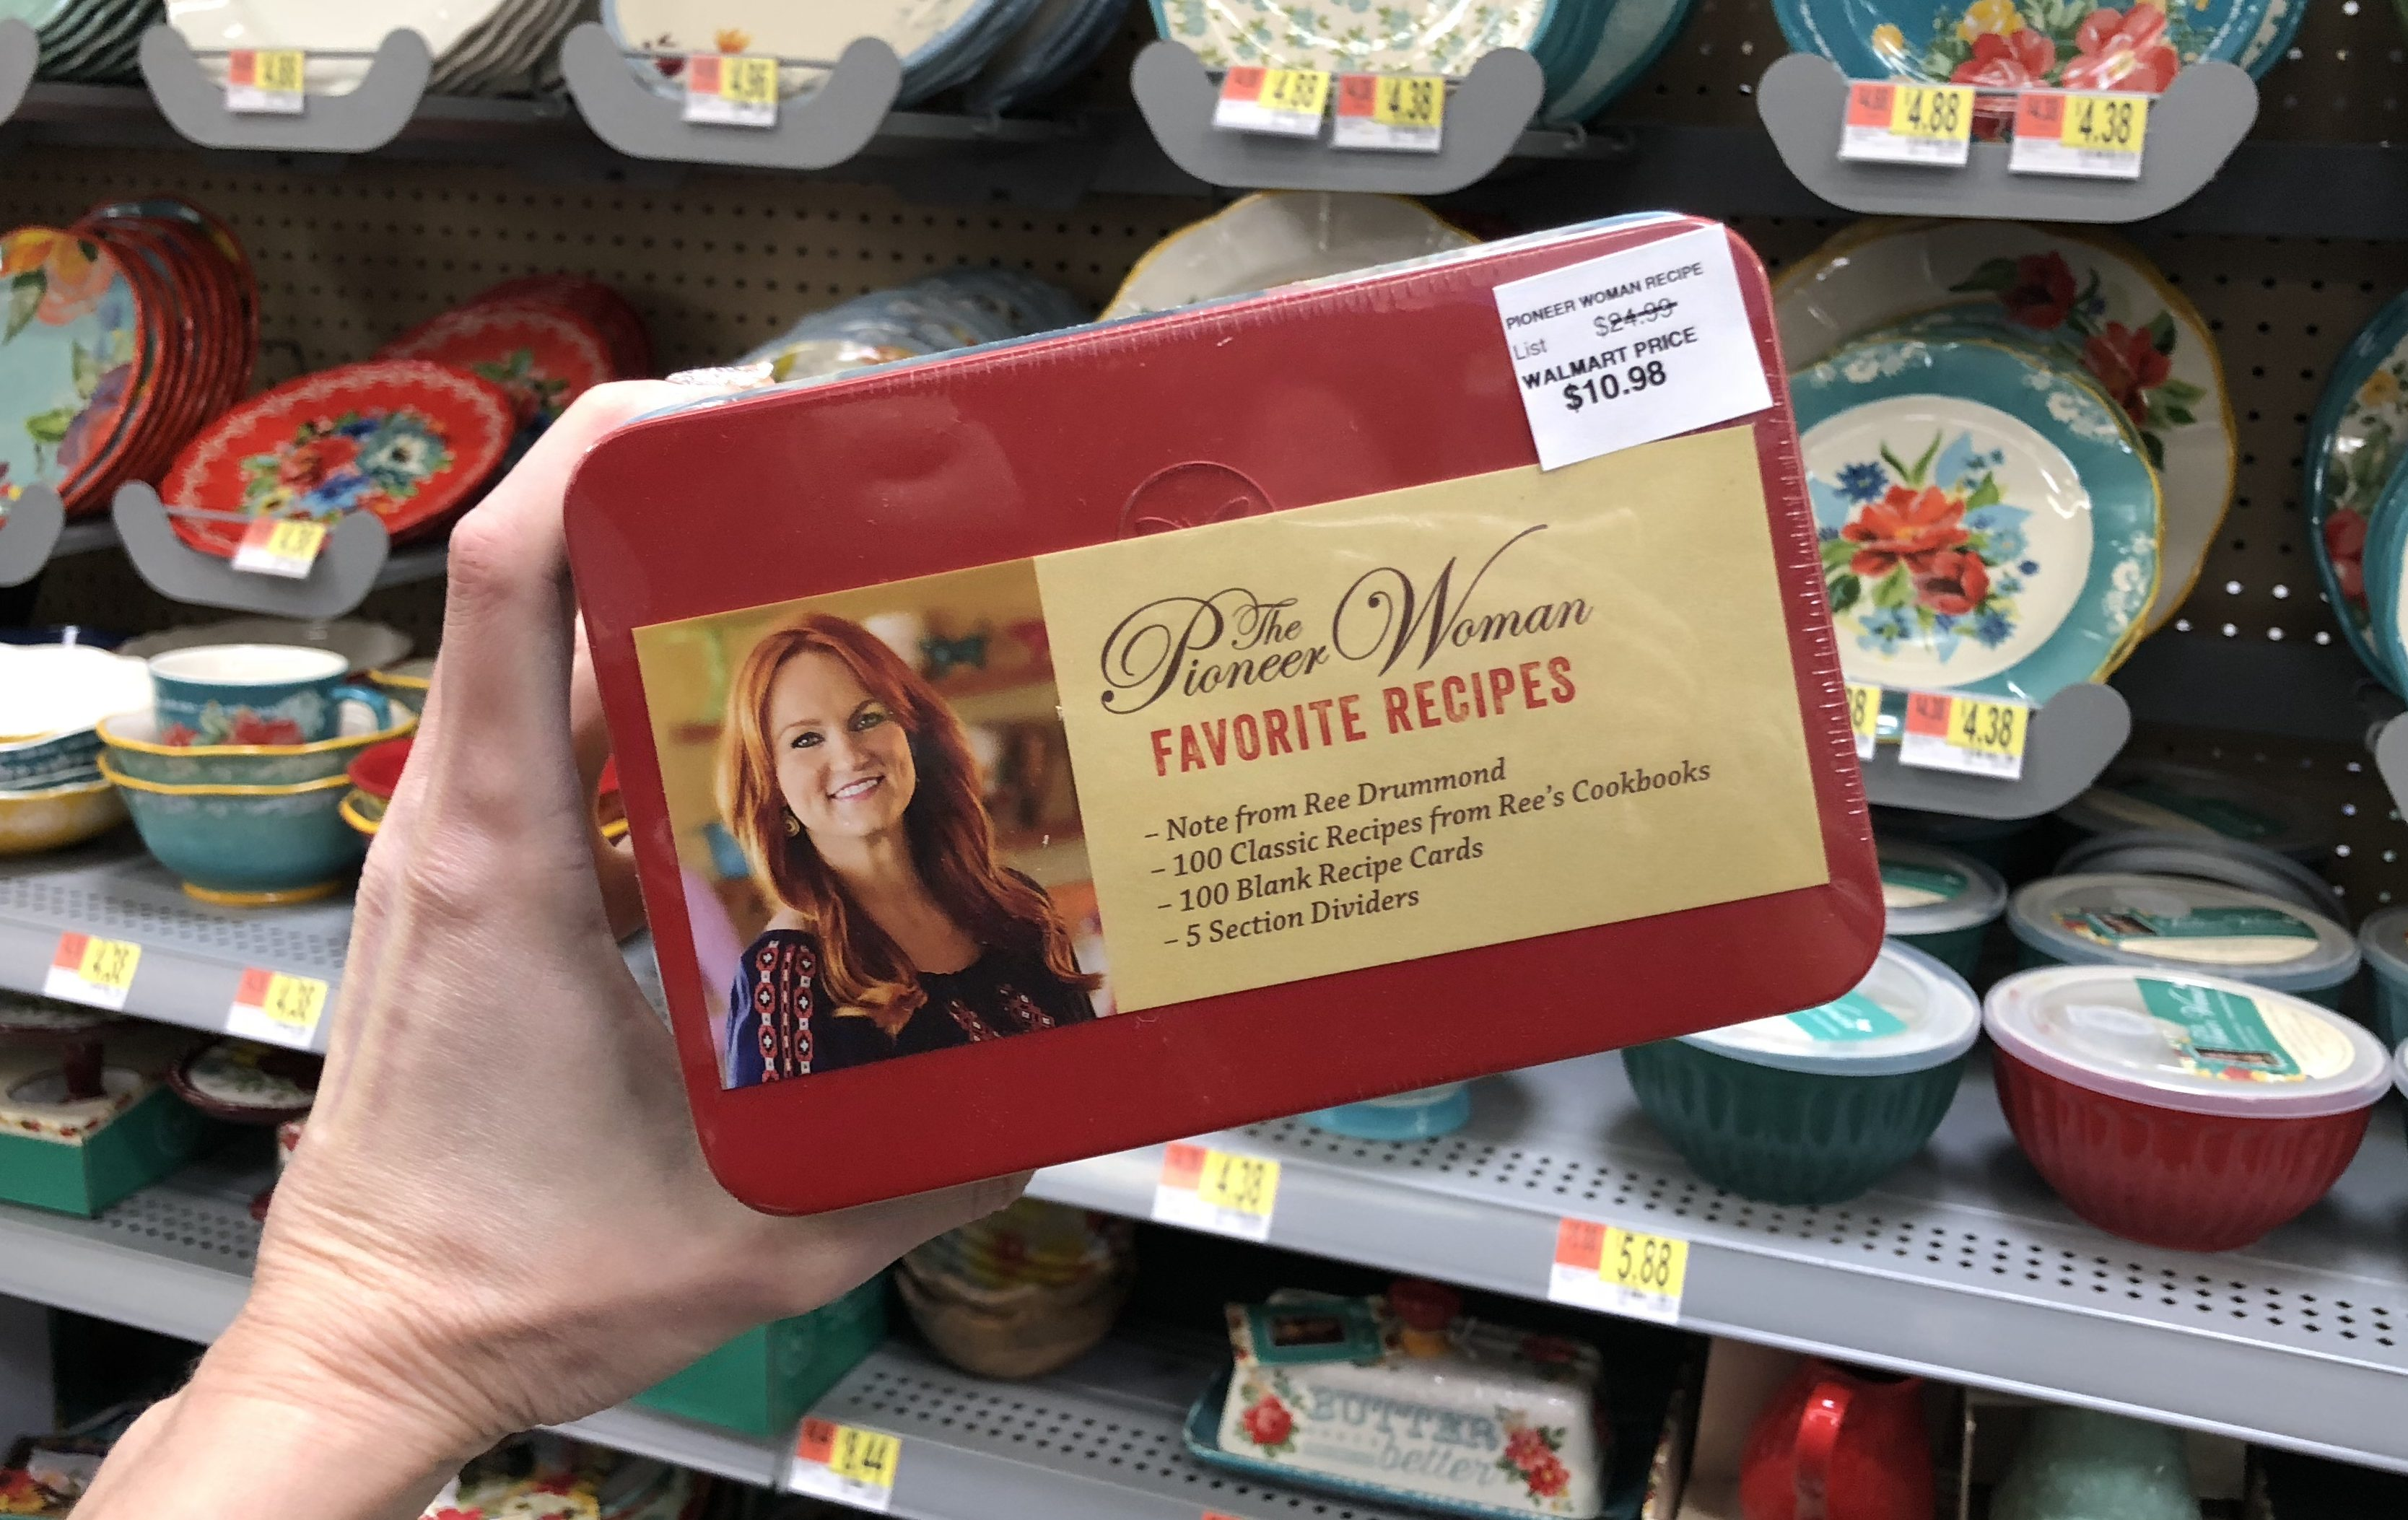 The Pioneer Woman Favorite Recipes Tin